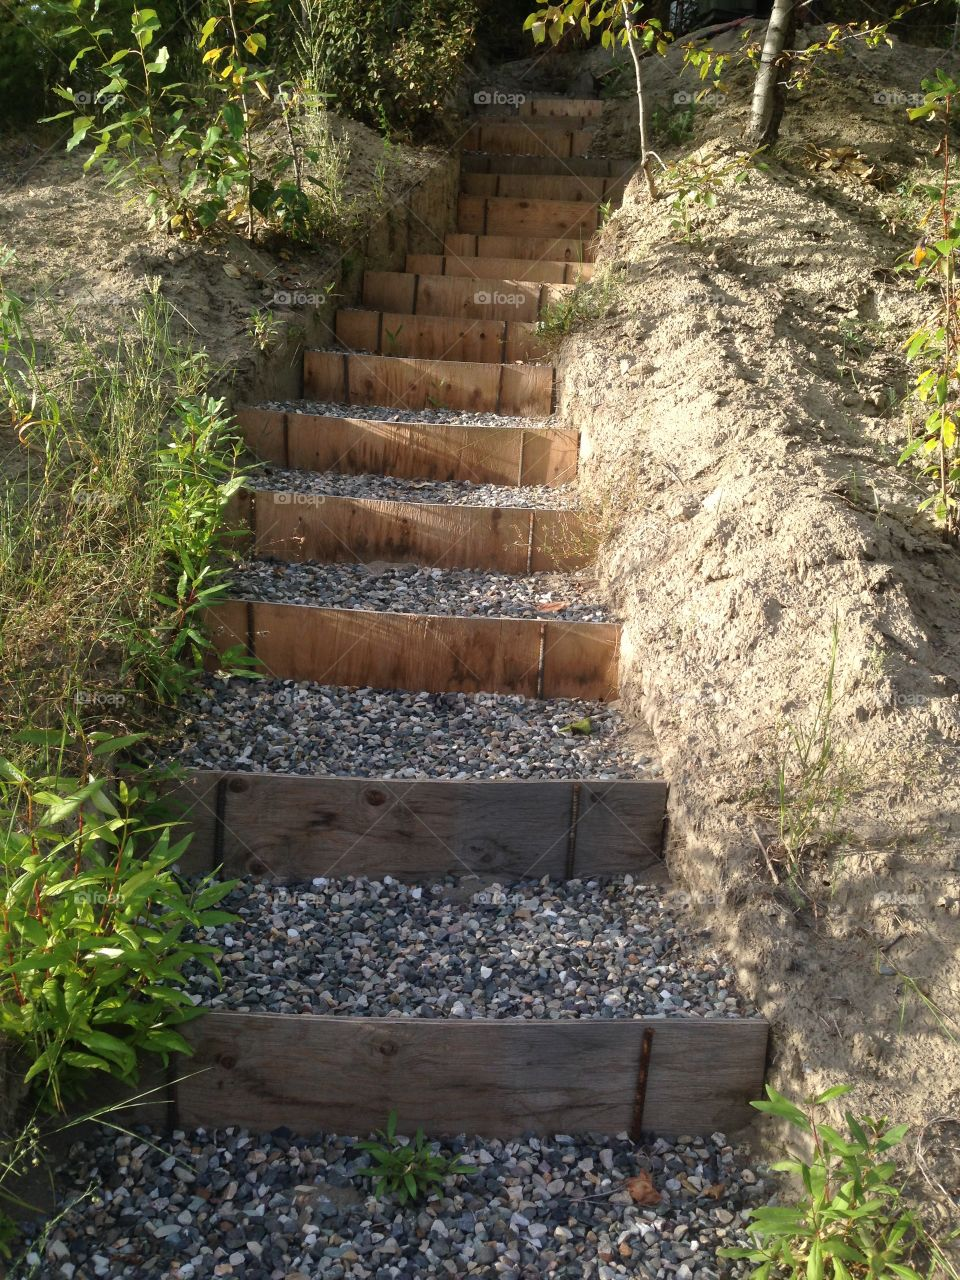 Homemade gravel stairs on a mountain side